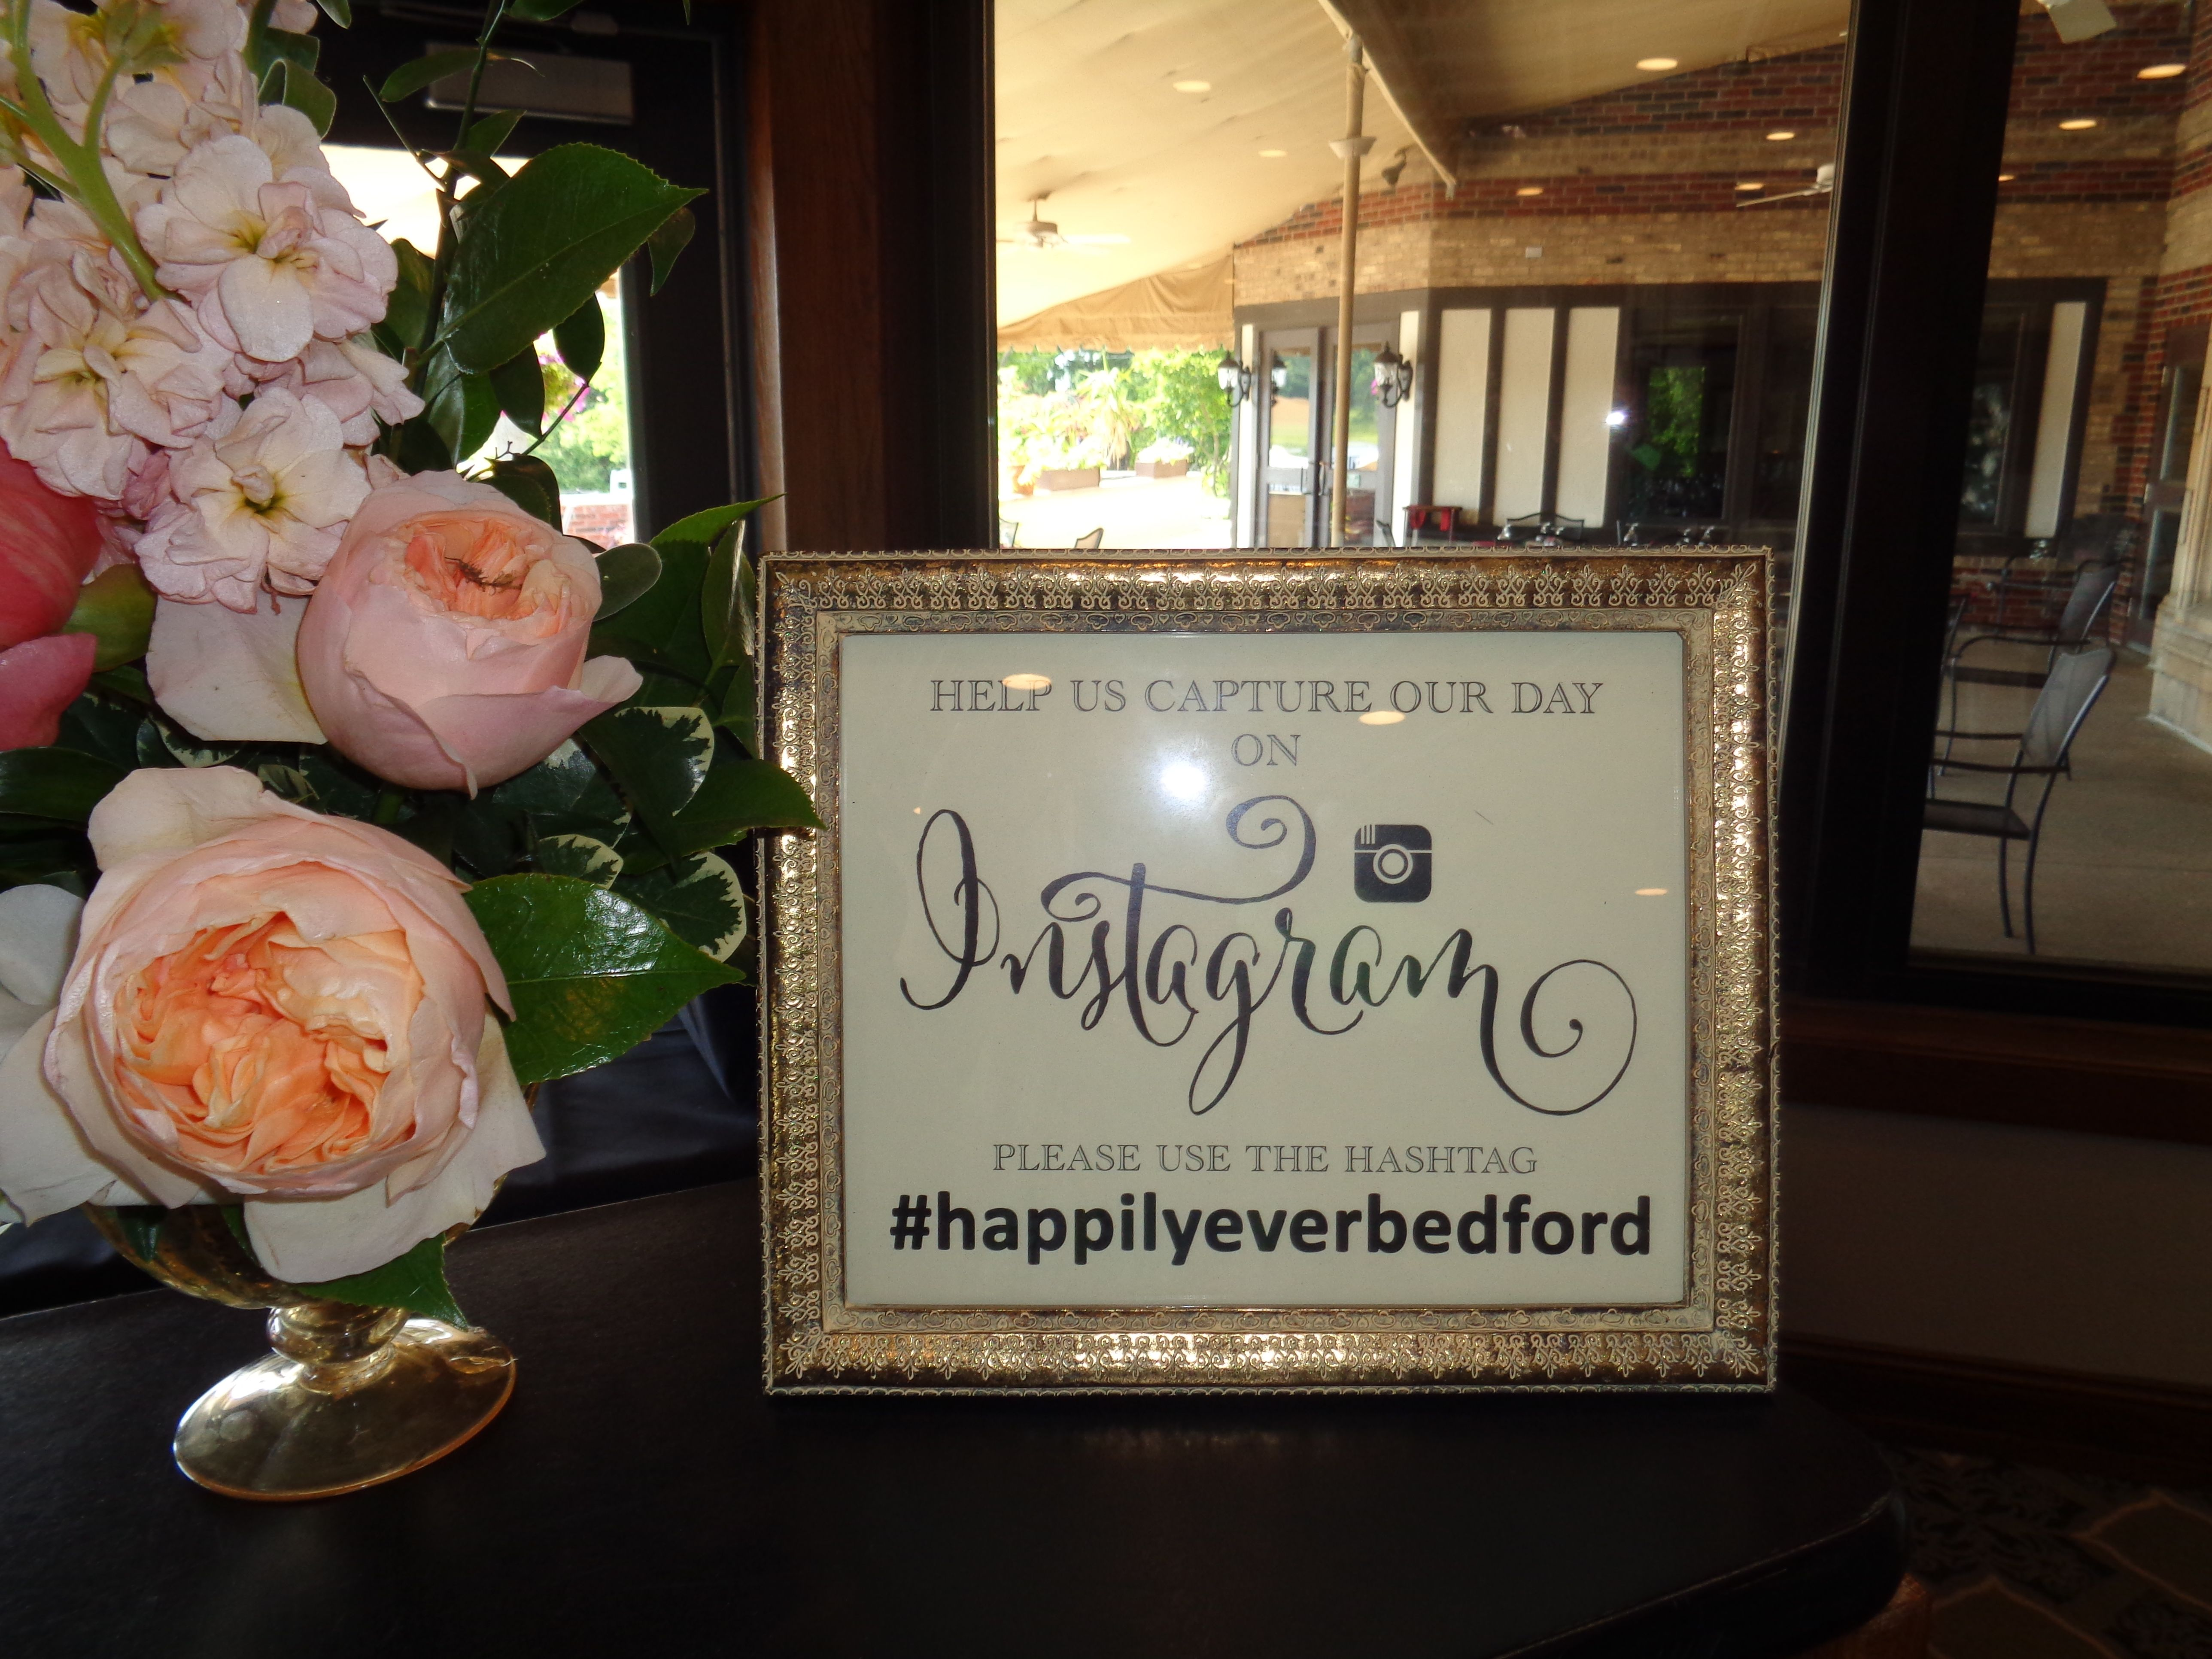 Summer Wedding at Lake Forest Country Club in Hudson, Ohio #SayIDoAtLFCC #happilyeverbedford